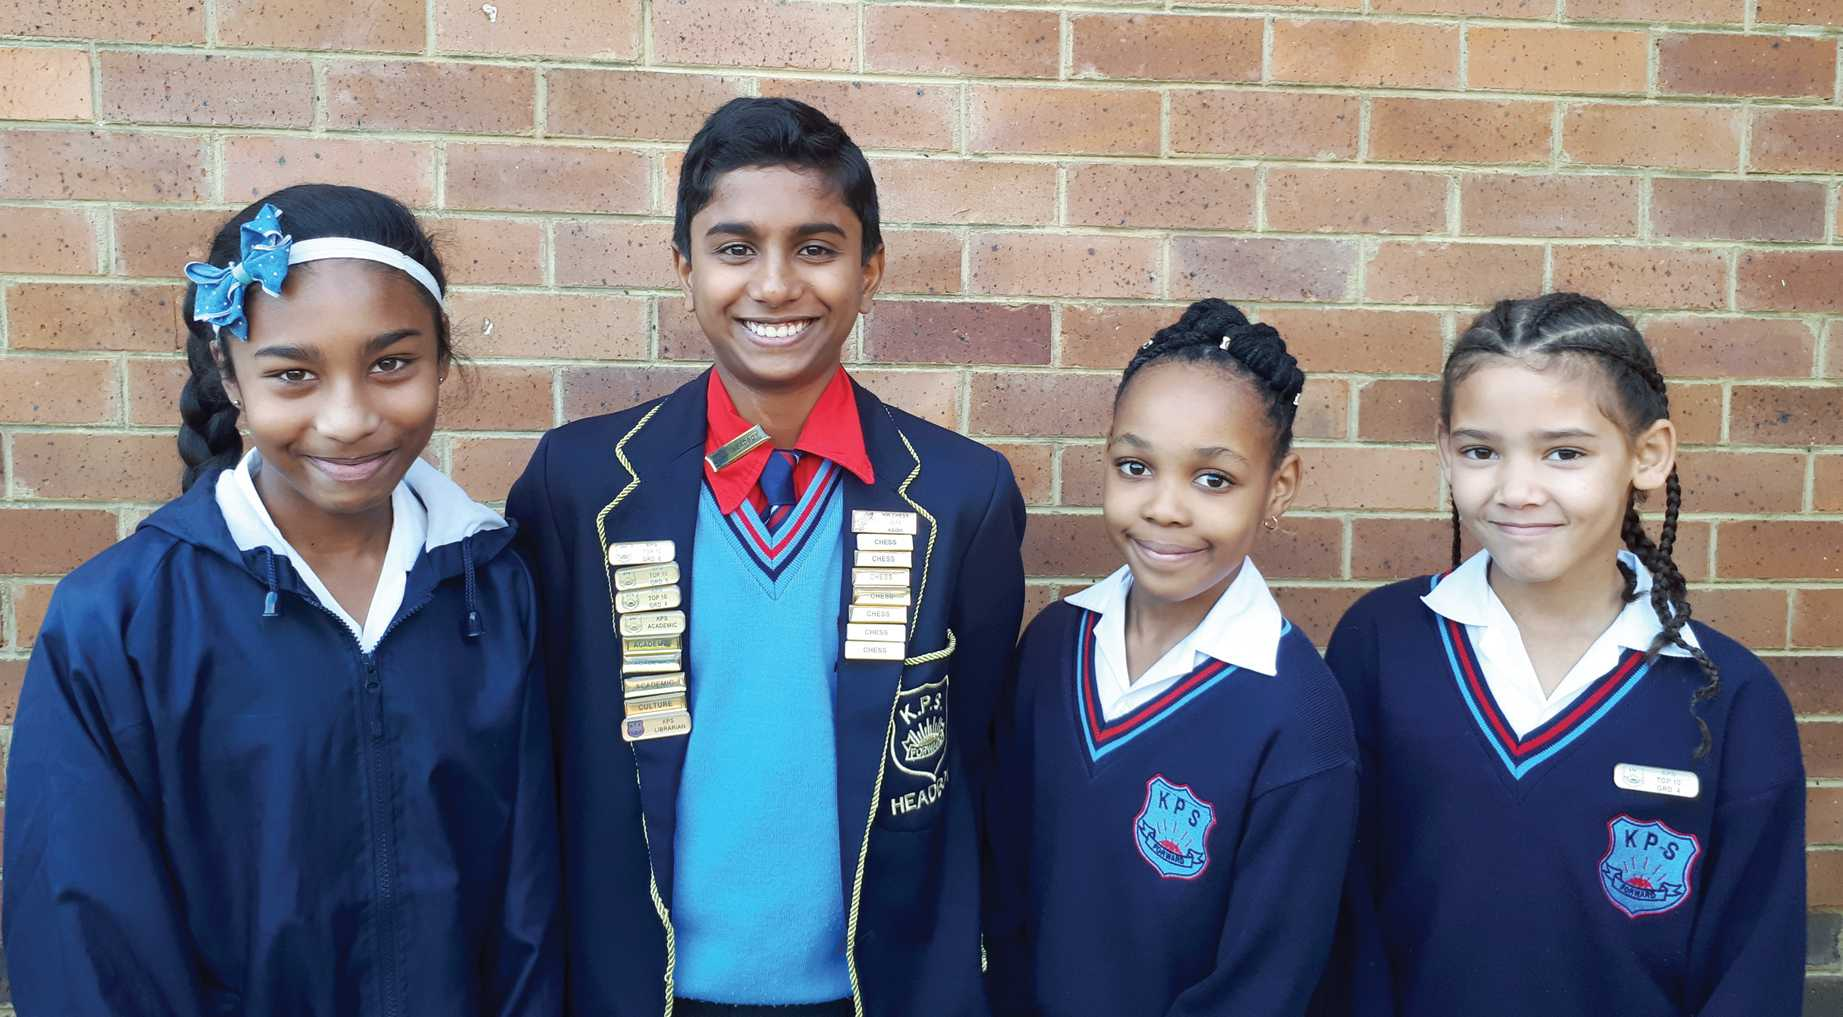 The following learners from Klerksdorp Primary School (KPS) were identified as the best achievers in their respective grades: Grade 5 - Peyton Govender with 91.3%, Grade 7 Asish Mathew with 90.7%, , Grade 6 Kgaogelo Maake with 89.8% and Grade 4 - Kaylah Vers with an average of 91.7%.